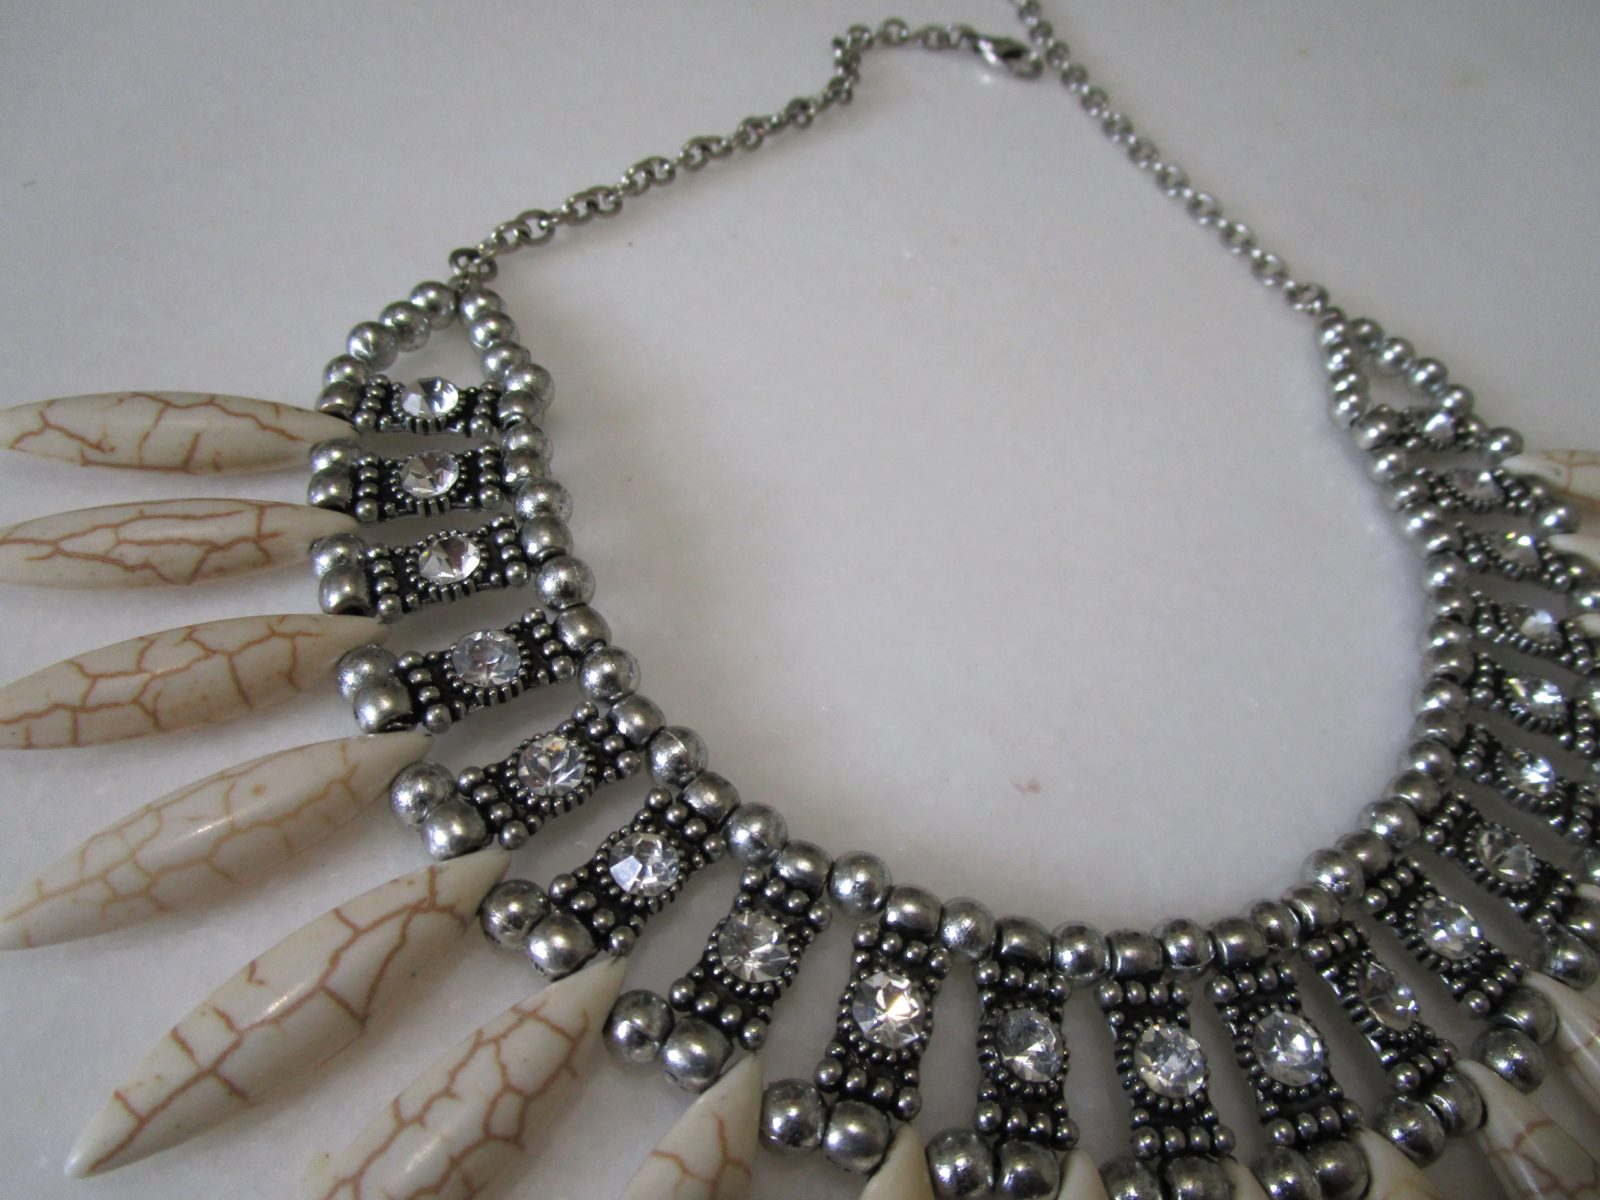 Women's Metallic Necklace With Stone Beads